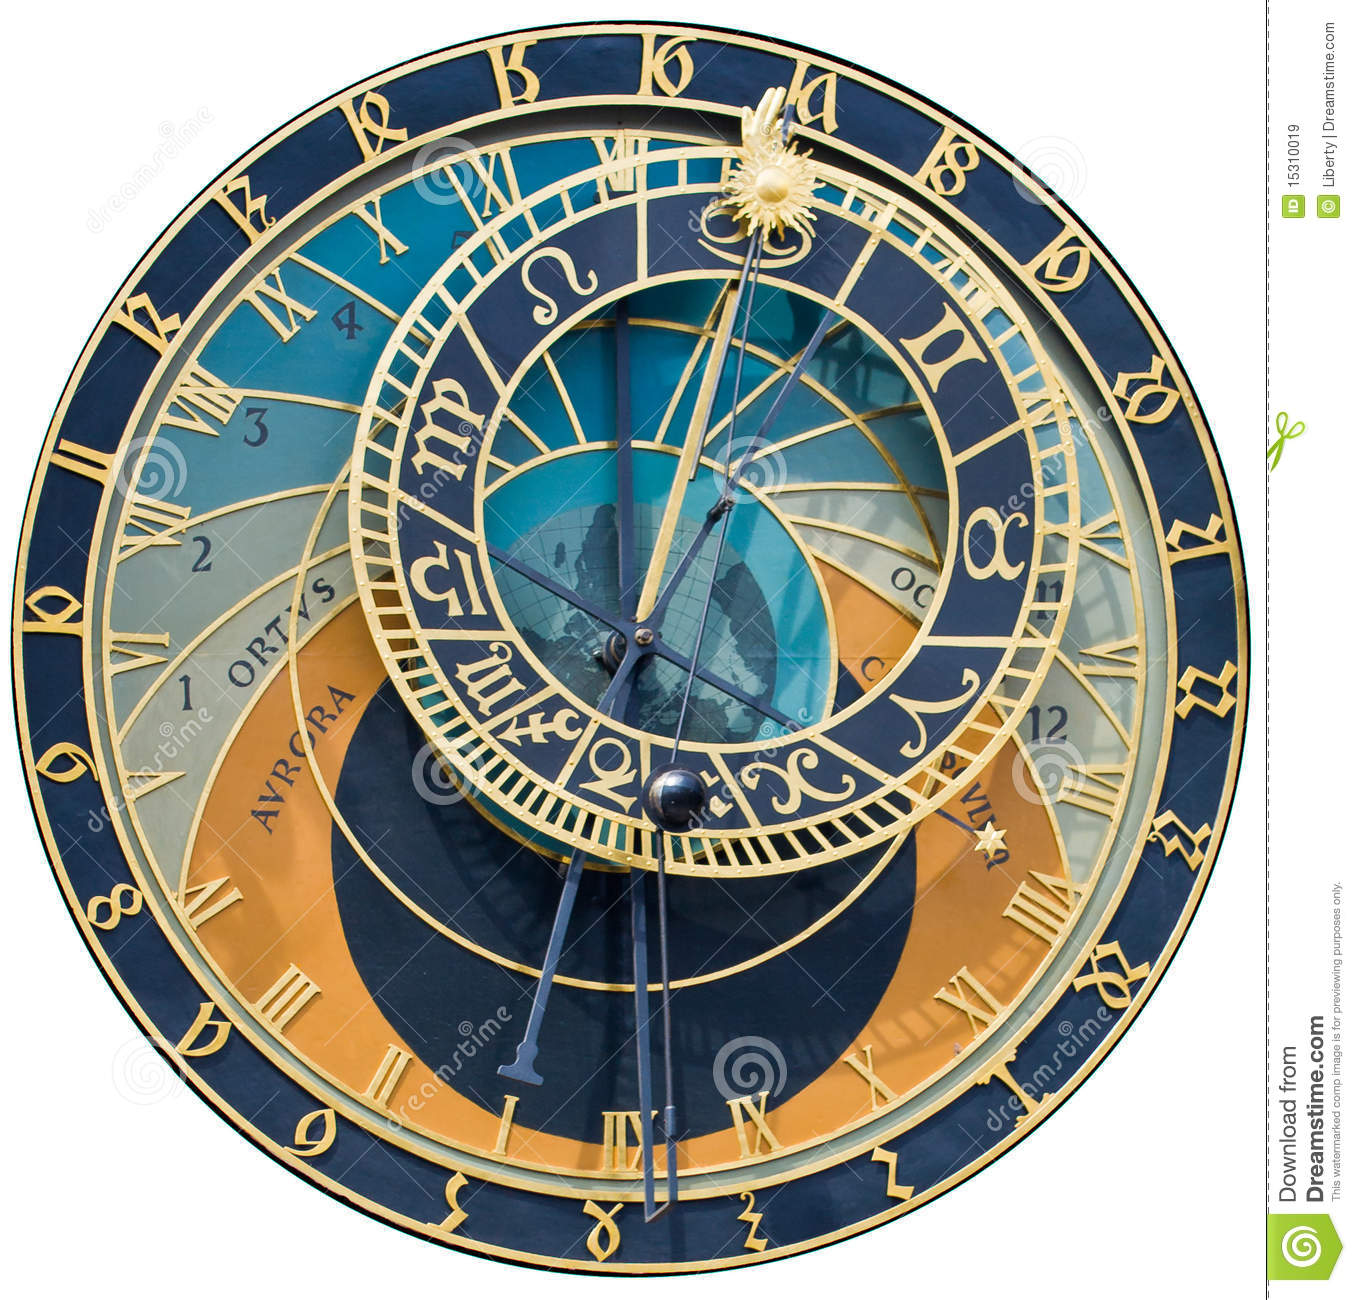 astronomy clock - photo #23